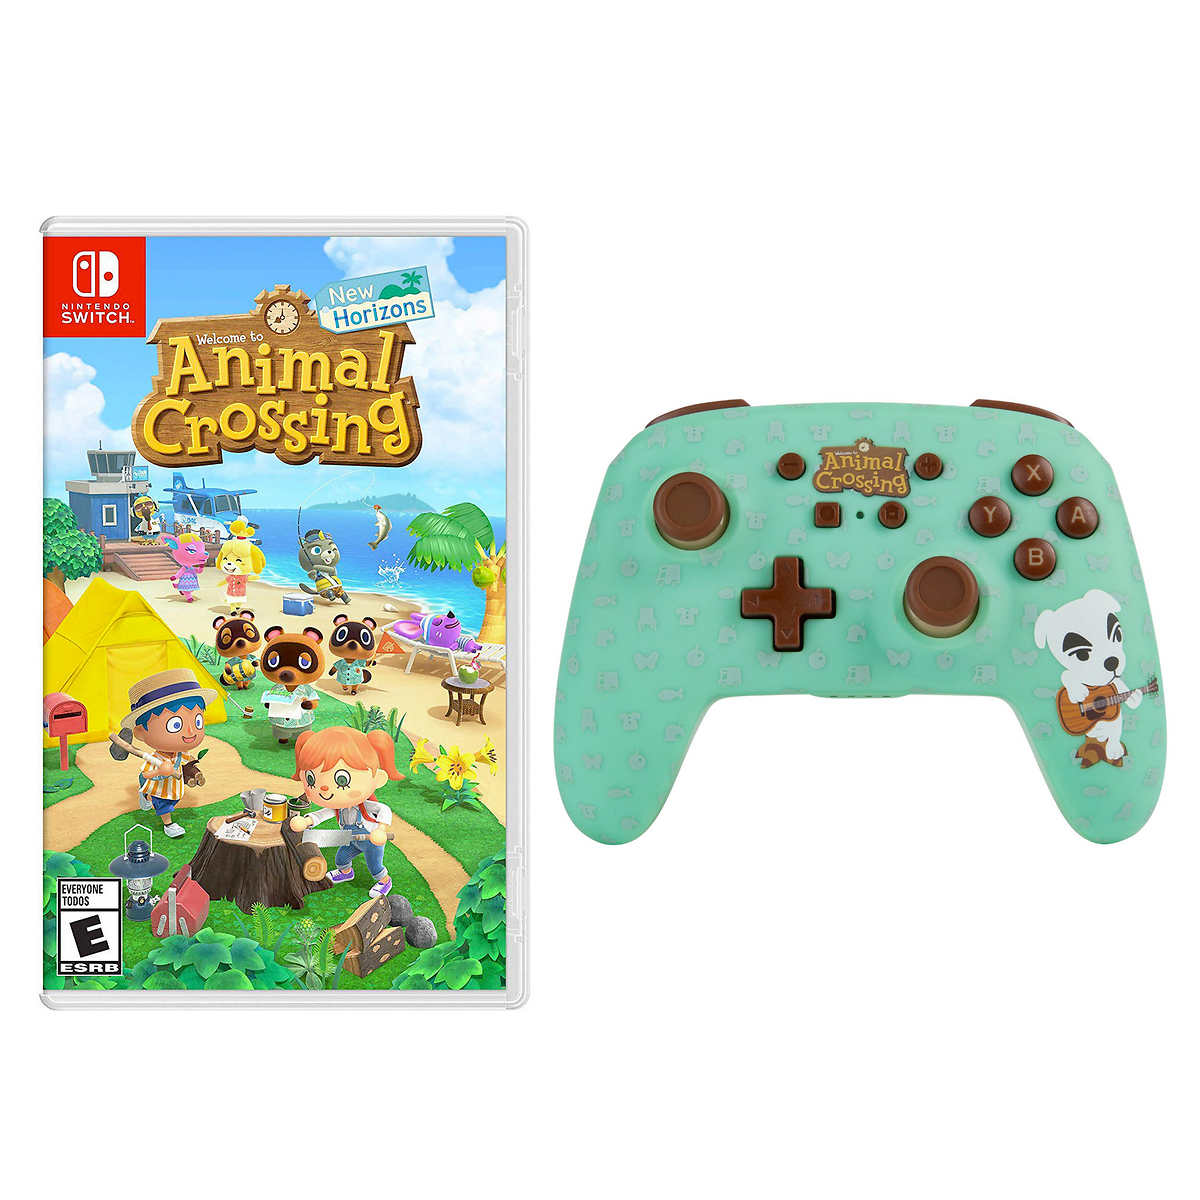 Nintendo Switch Animal Crossing Game And Powera Wireless